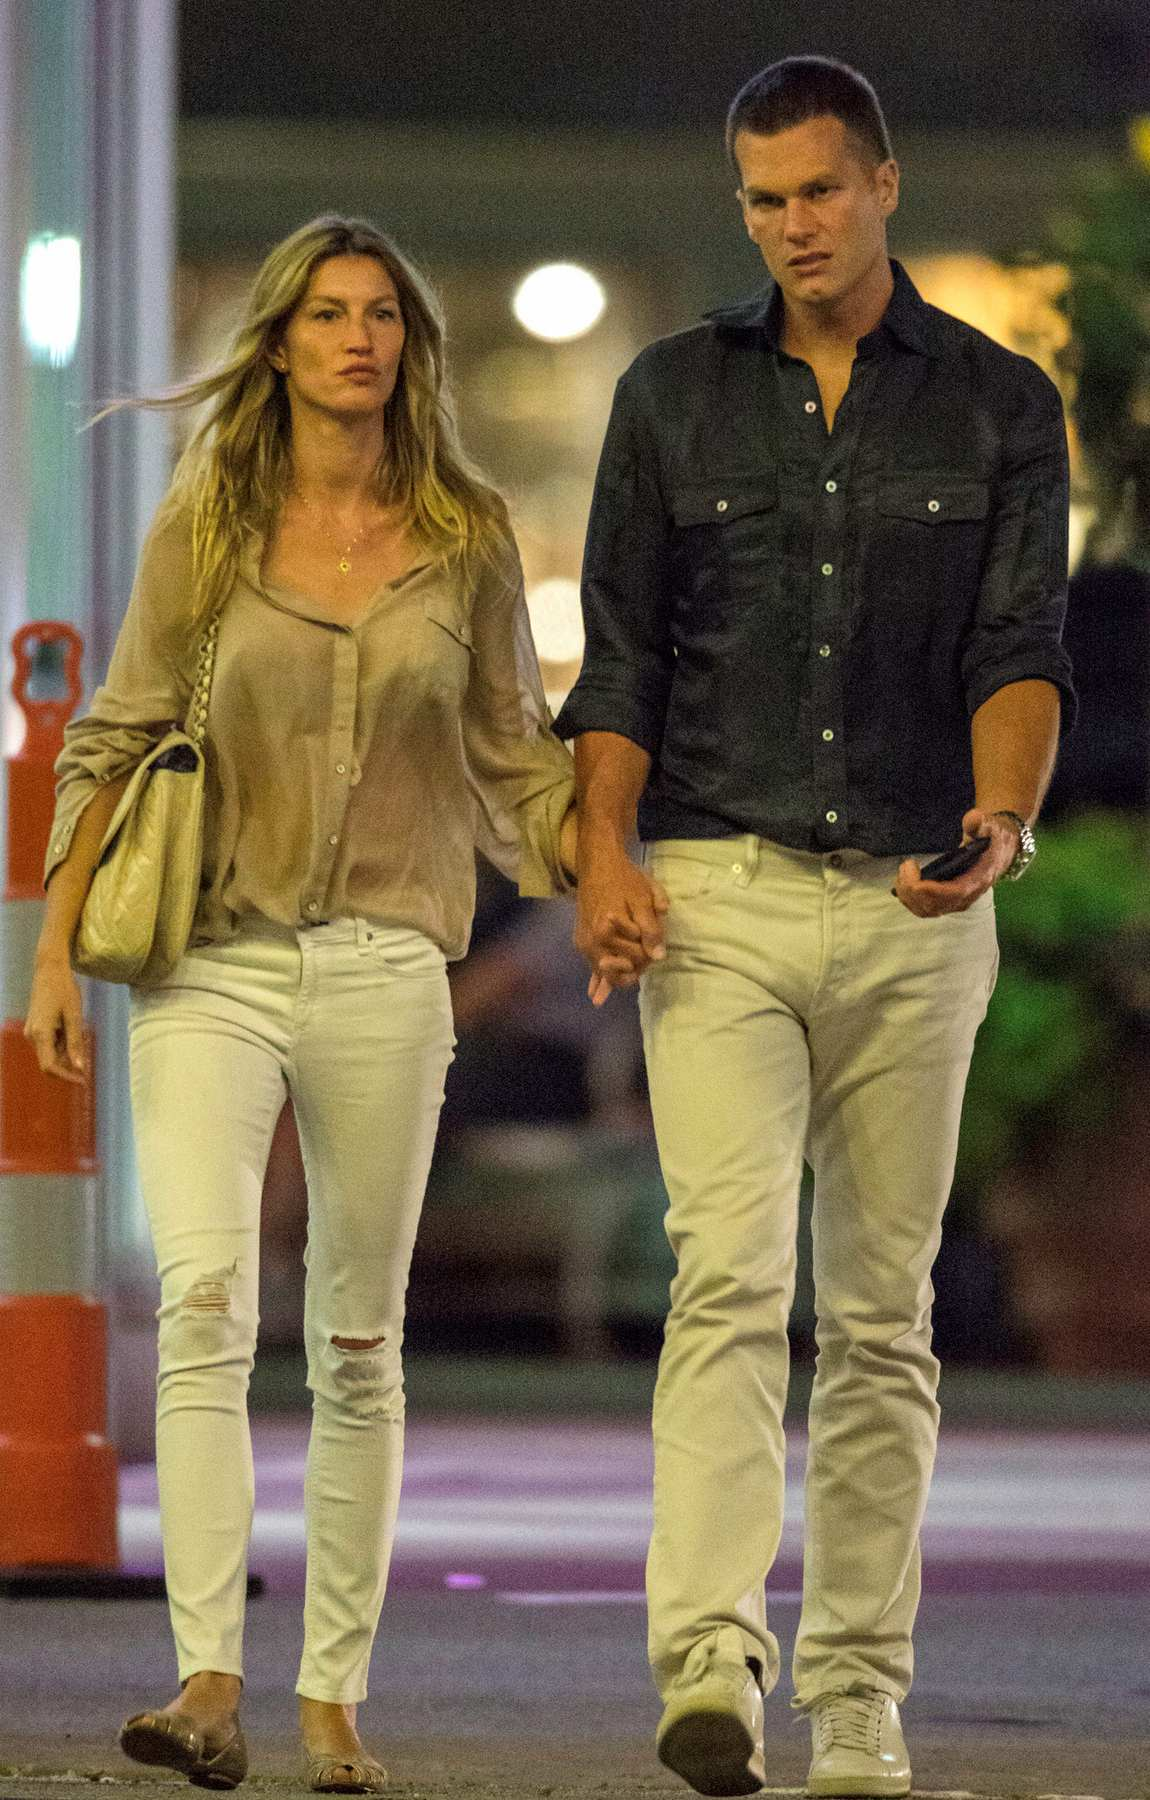 Gisele Bundchen and Tom Brady Hand in Hand Leaving Movie Theatre-1